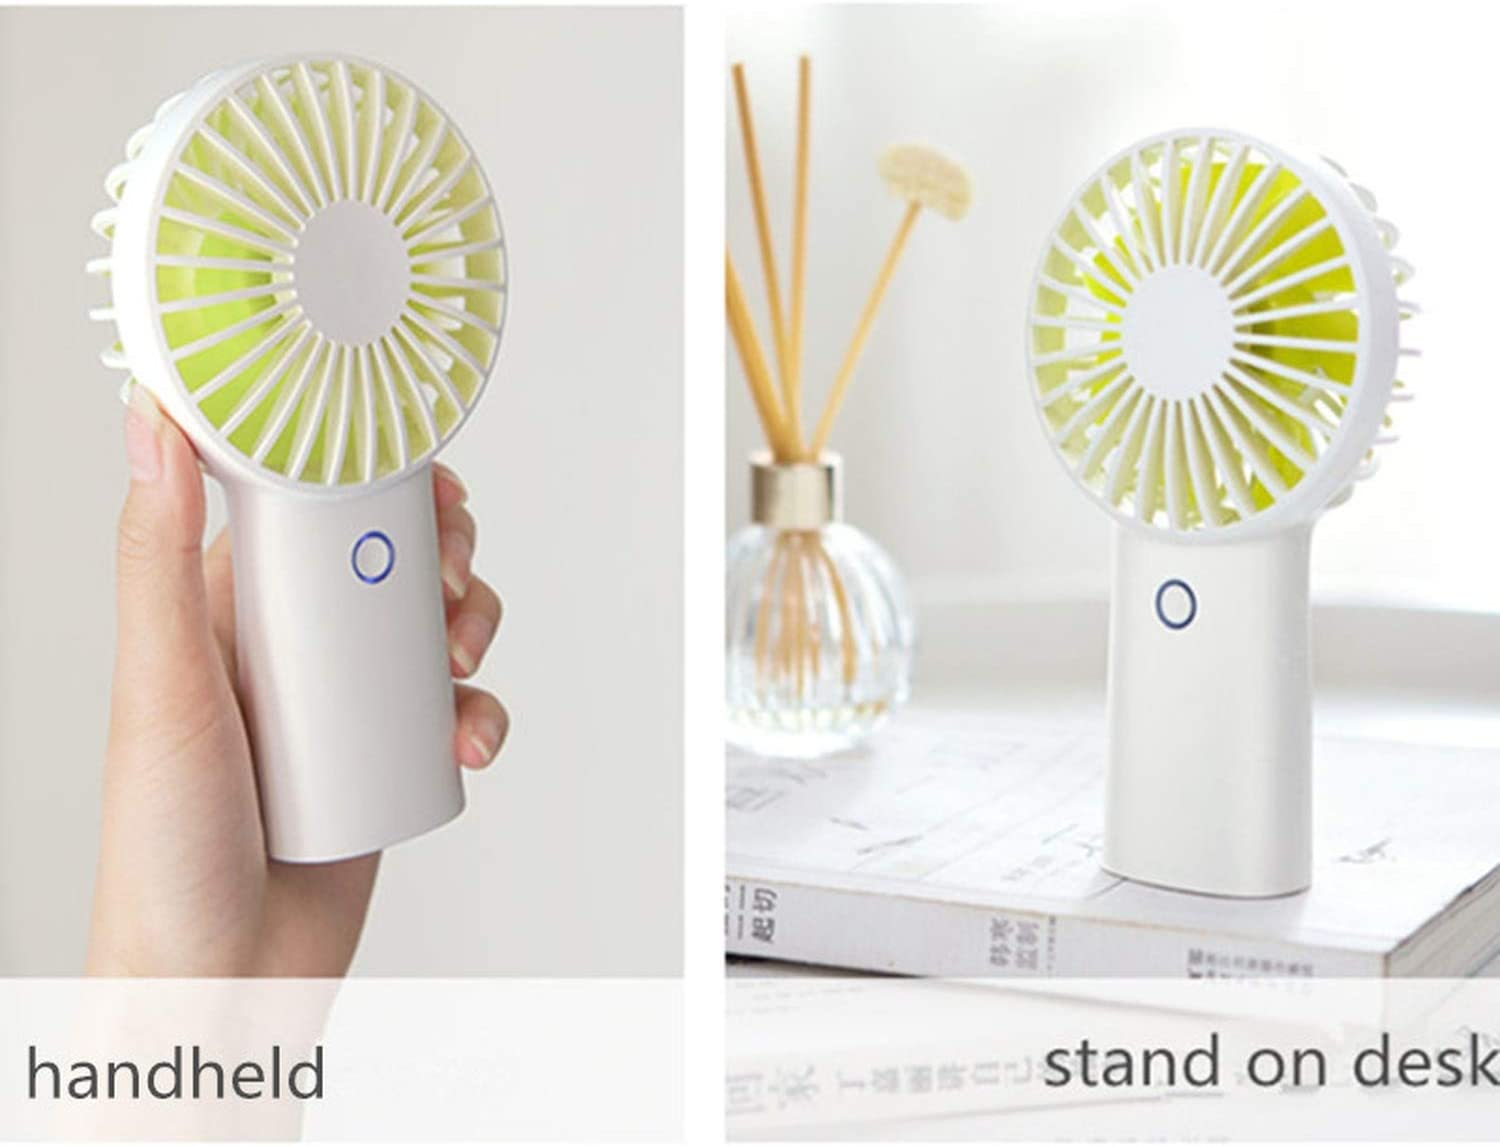 4000MAH Rechargeable USB Handheld Mini Fan Third Gear Silent Strong Wind Personal Air Cooler Portable Desk Fans for Home Office,Navy Blue